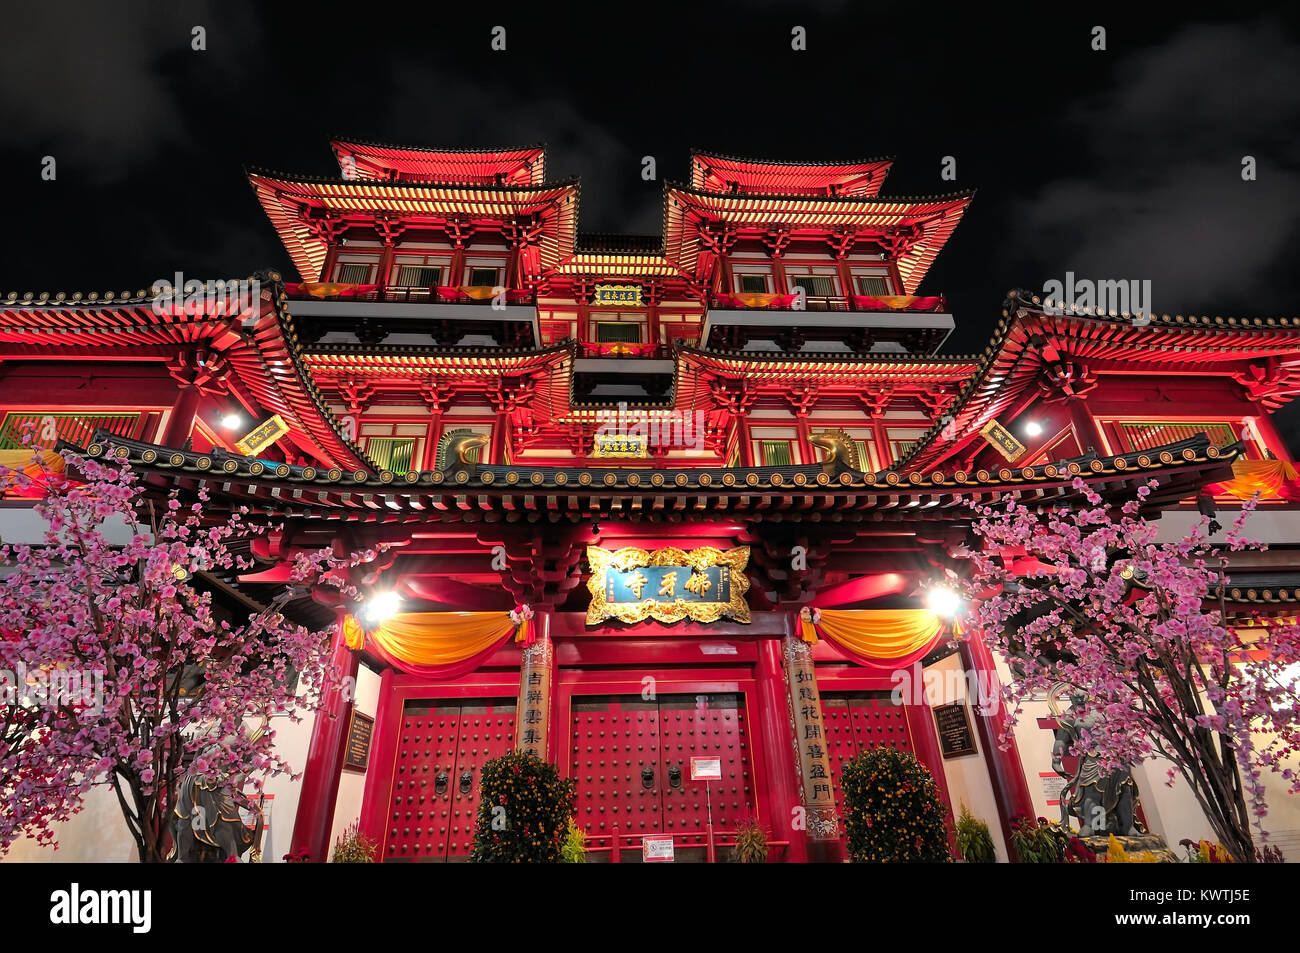 Night View Of Majestic Asian Style Buddhist Temple Architecture